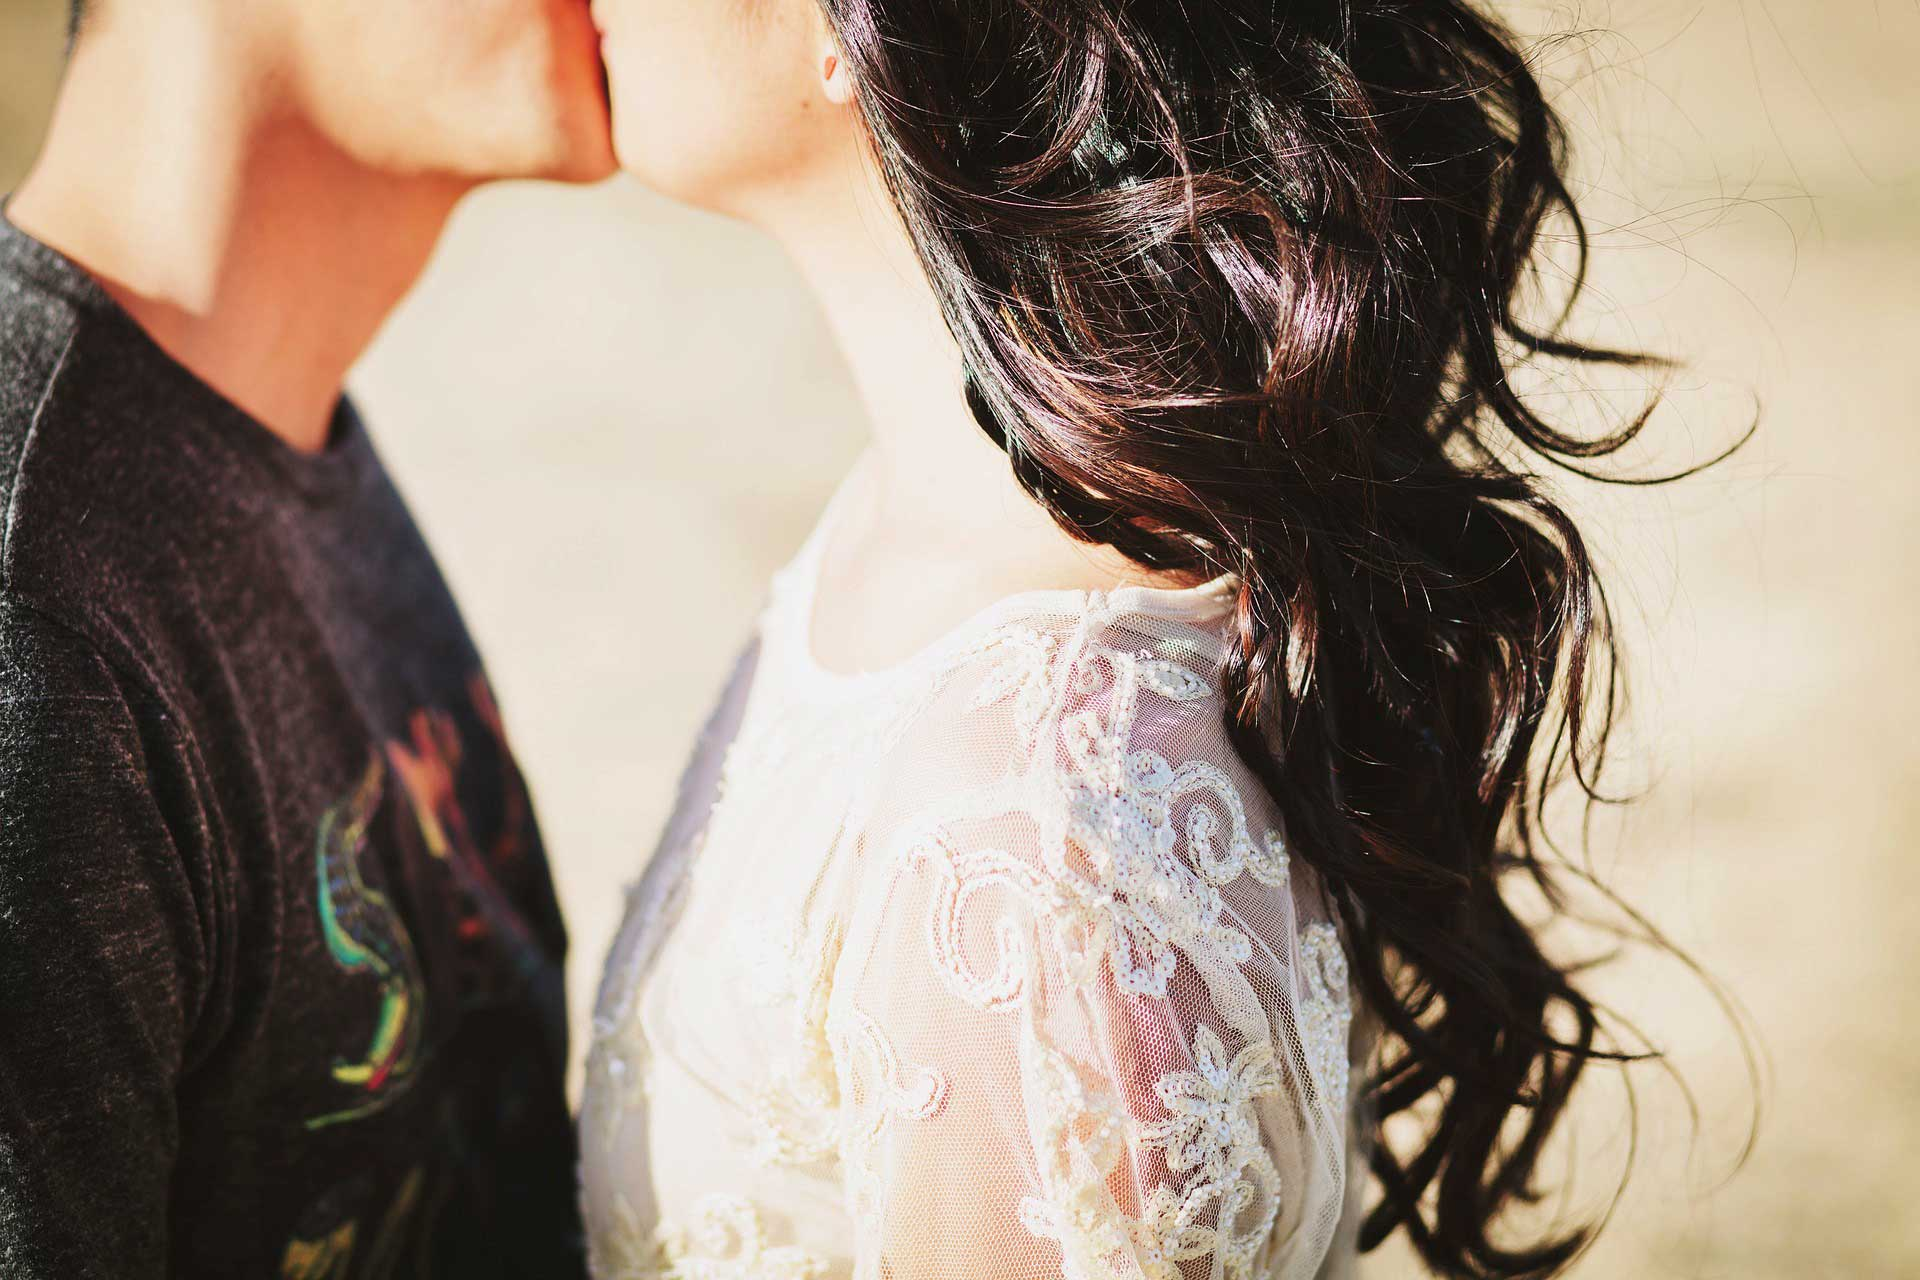 Hd wallpaper kiss - 18 Kissing Pictures Of Love Couple Hd Wallpapers Couples